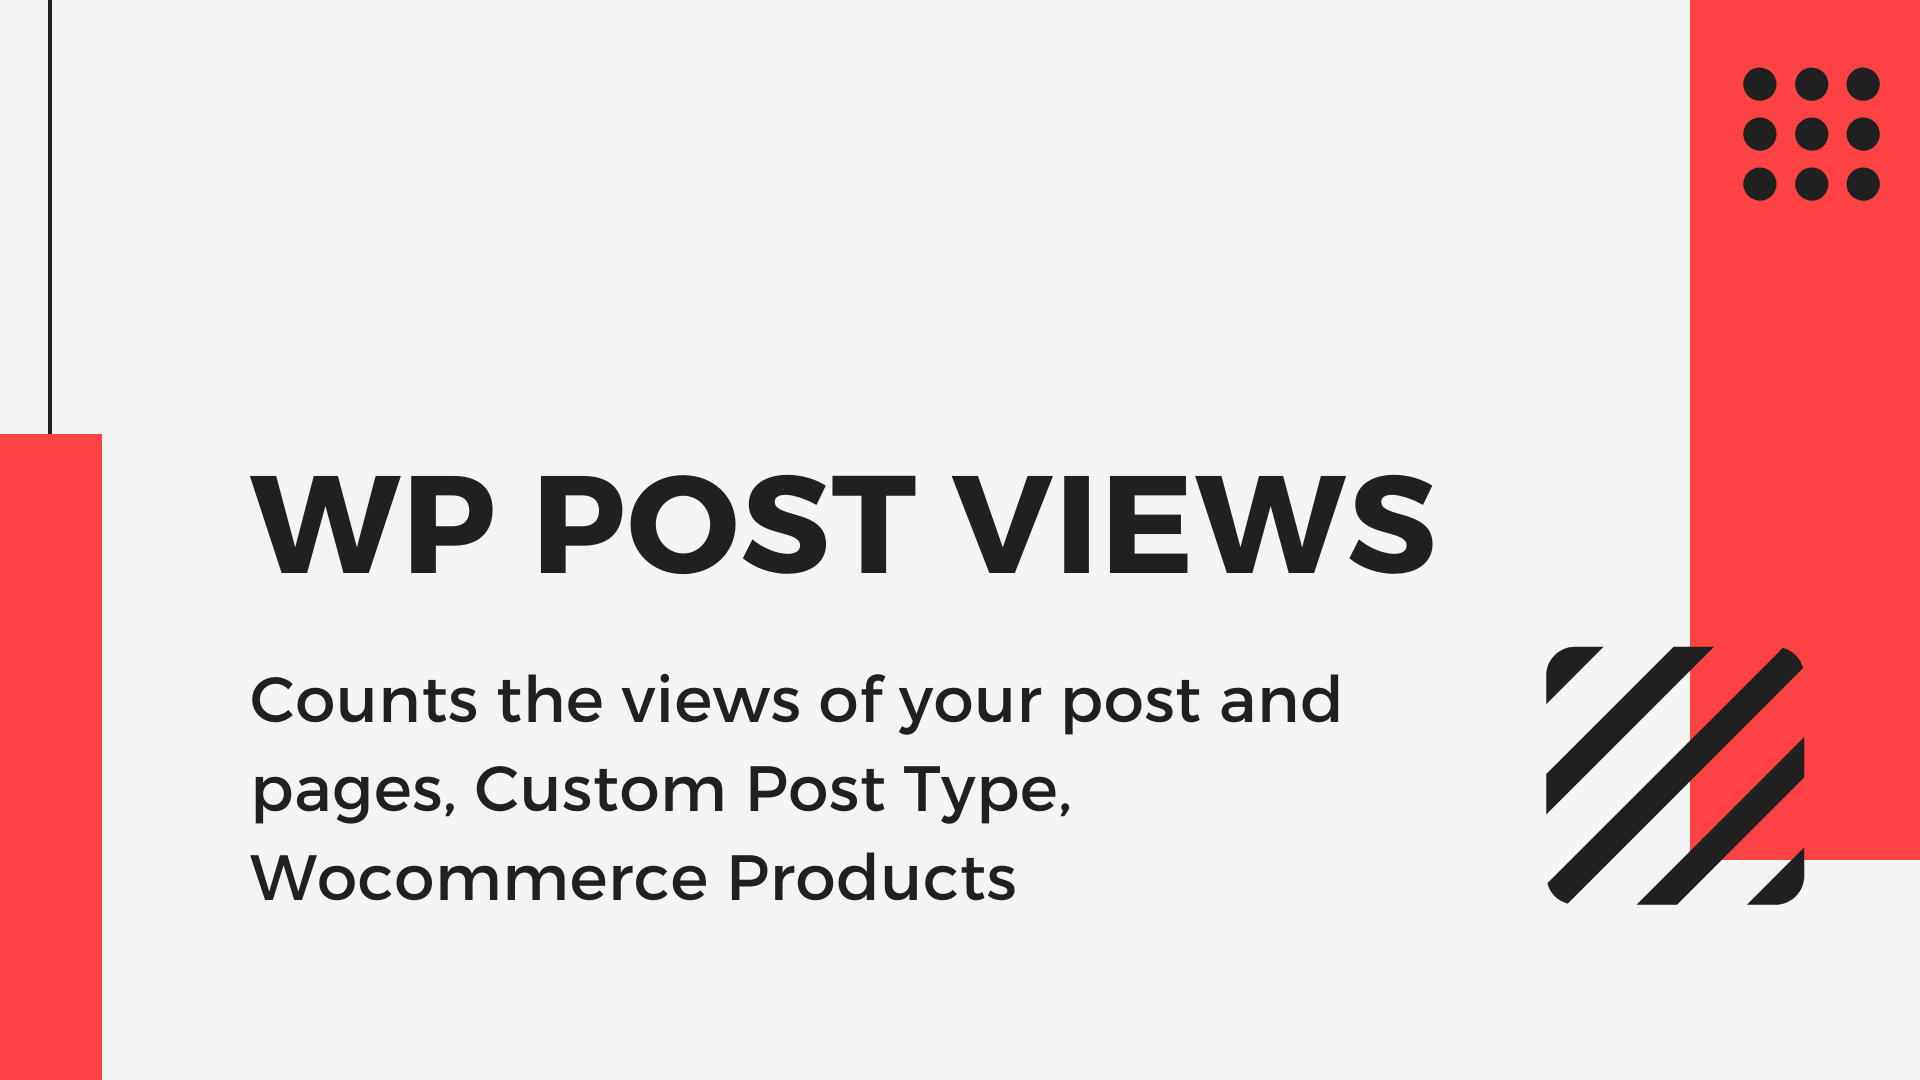 How to use WP Post Views